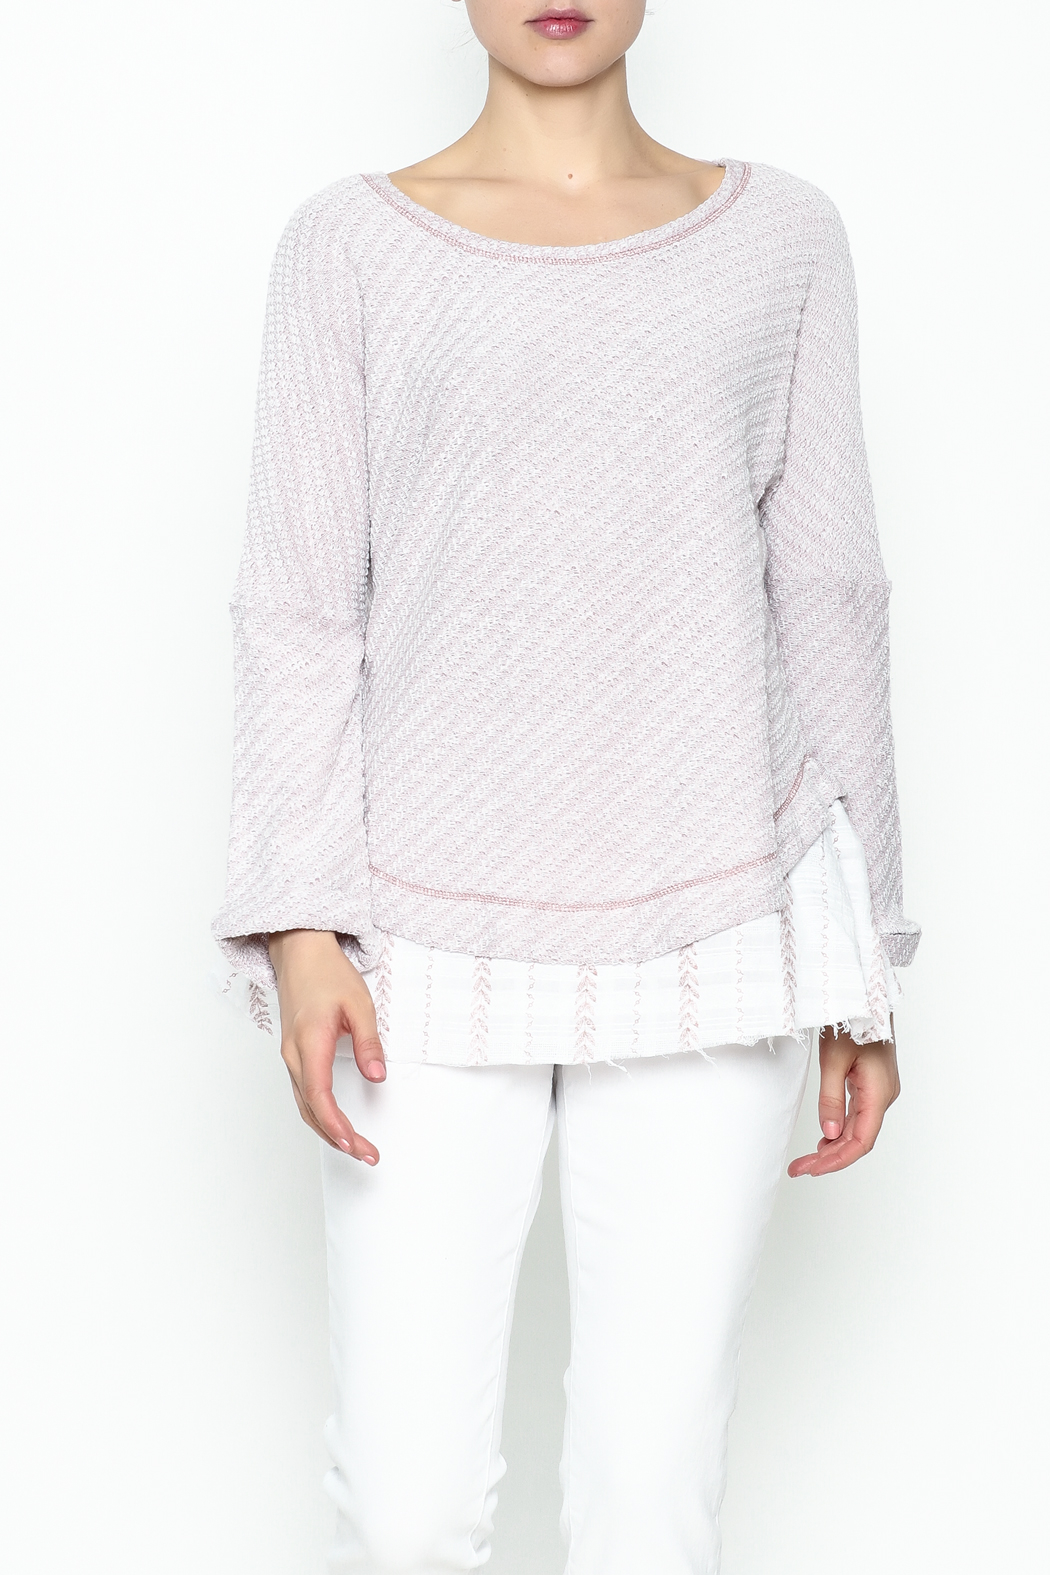 Hyku Knit Layered Top - Front Cropped Image